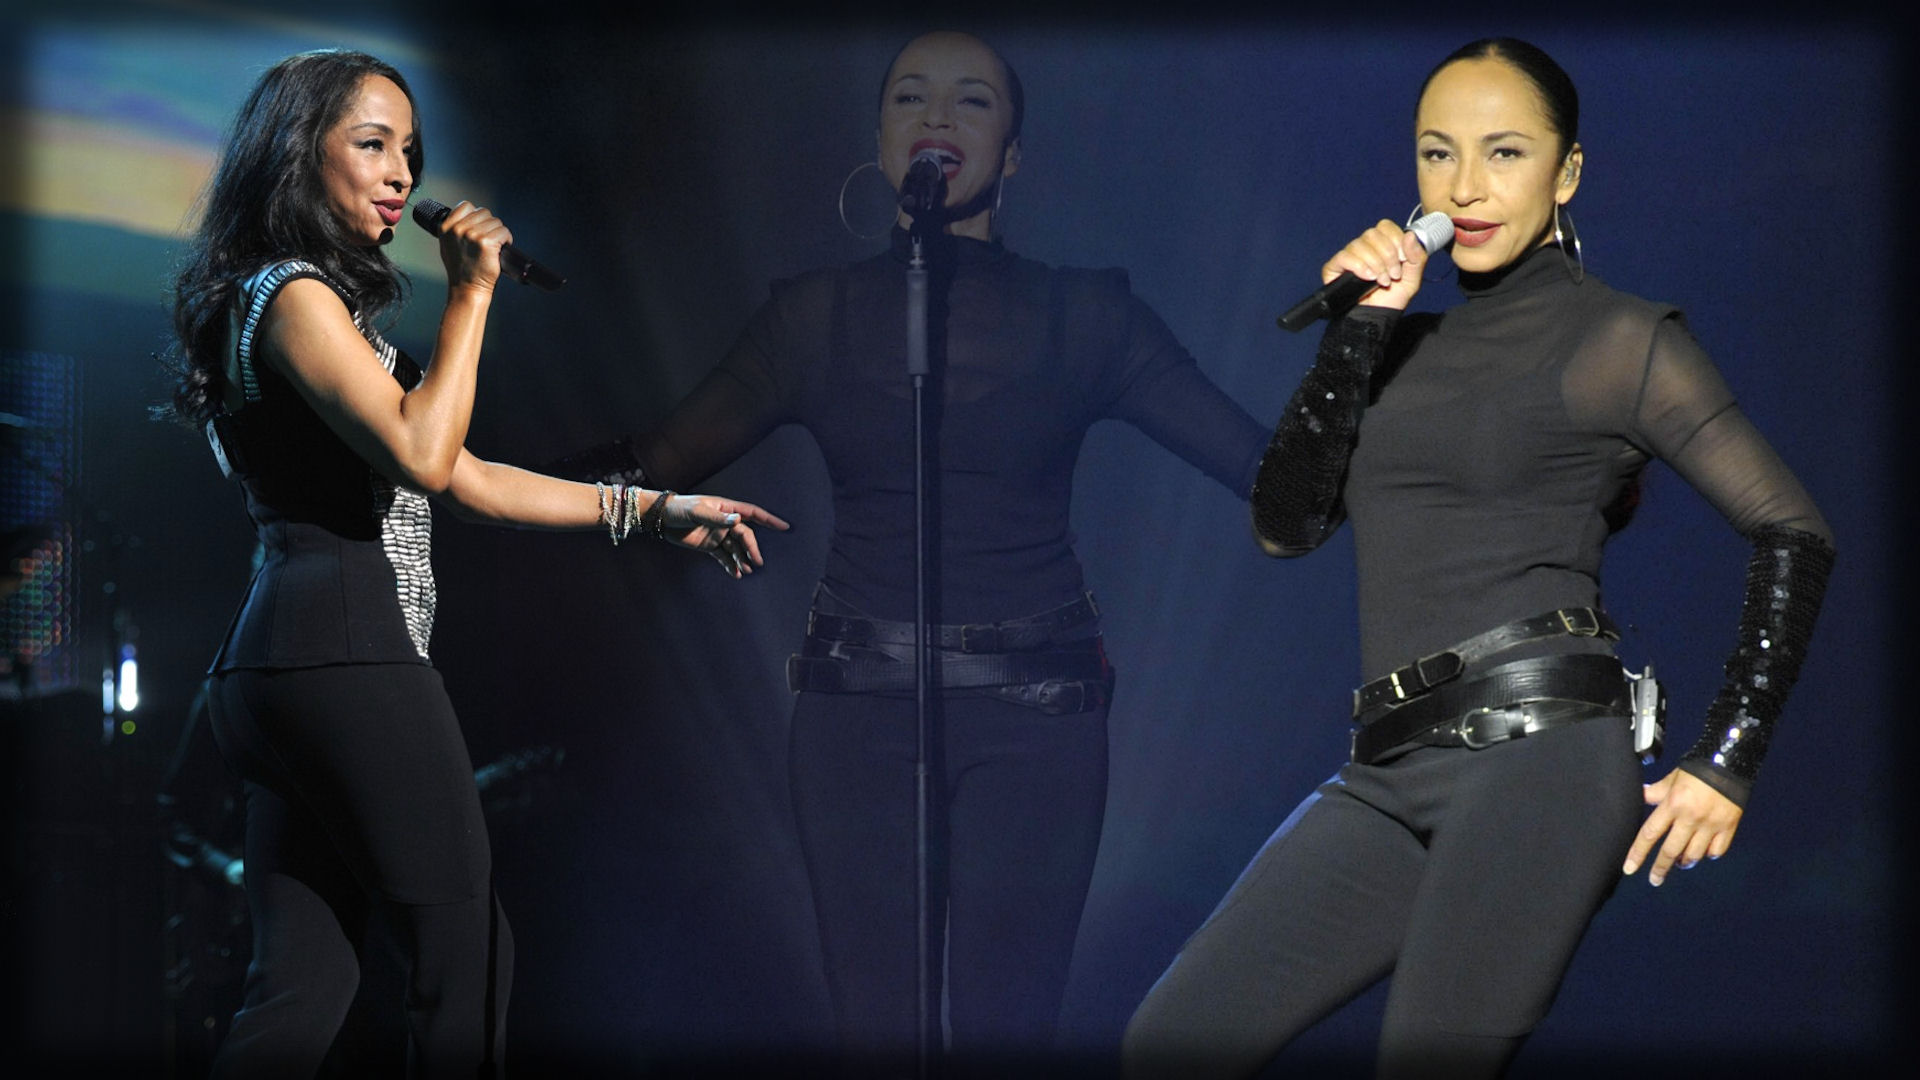 Sade Wallpaper http://wall.alphacoders.com/big.php?i=309602